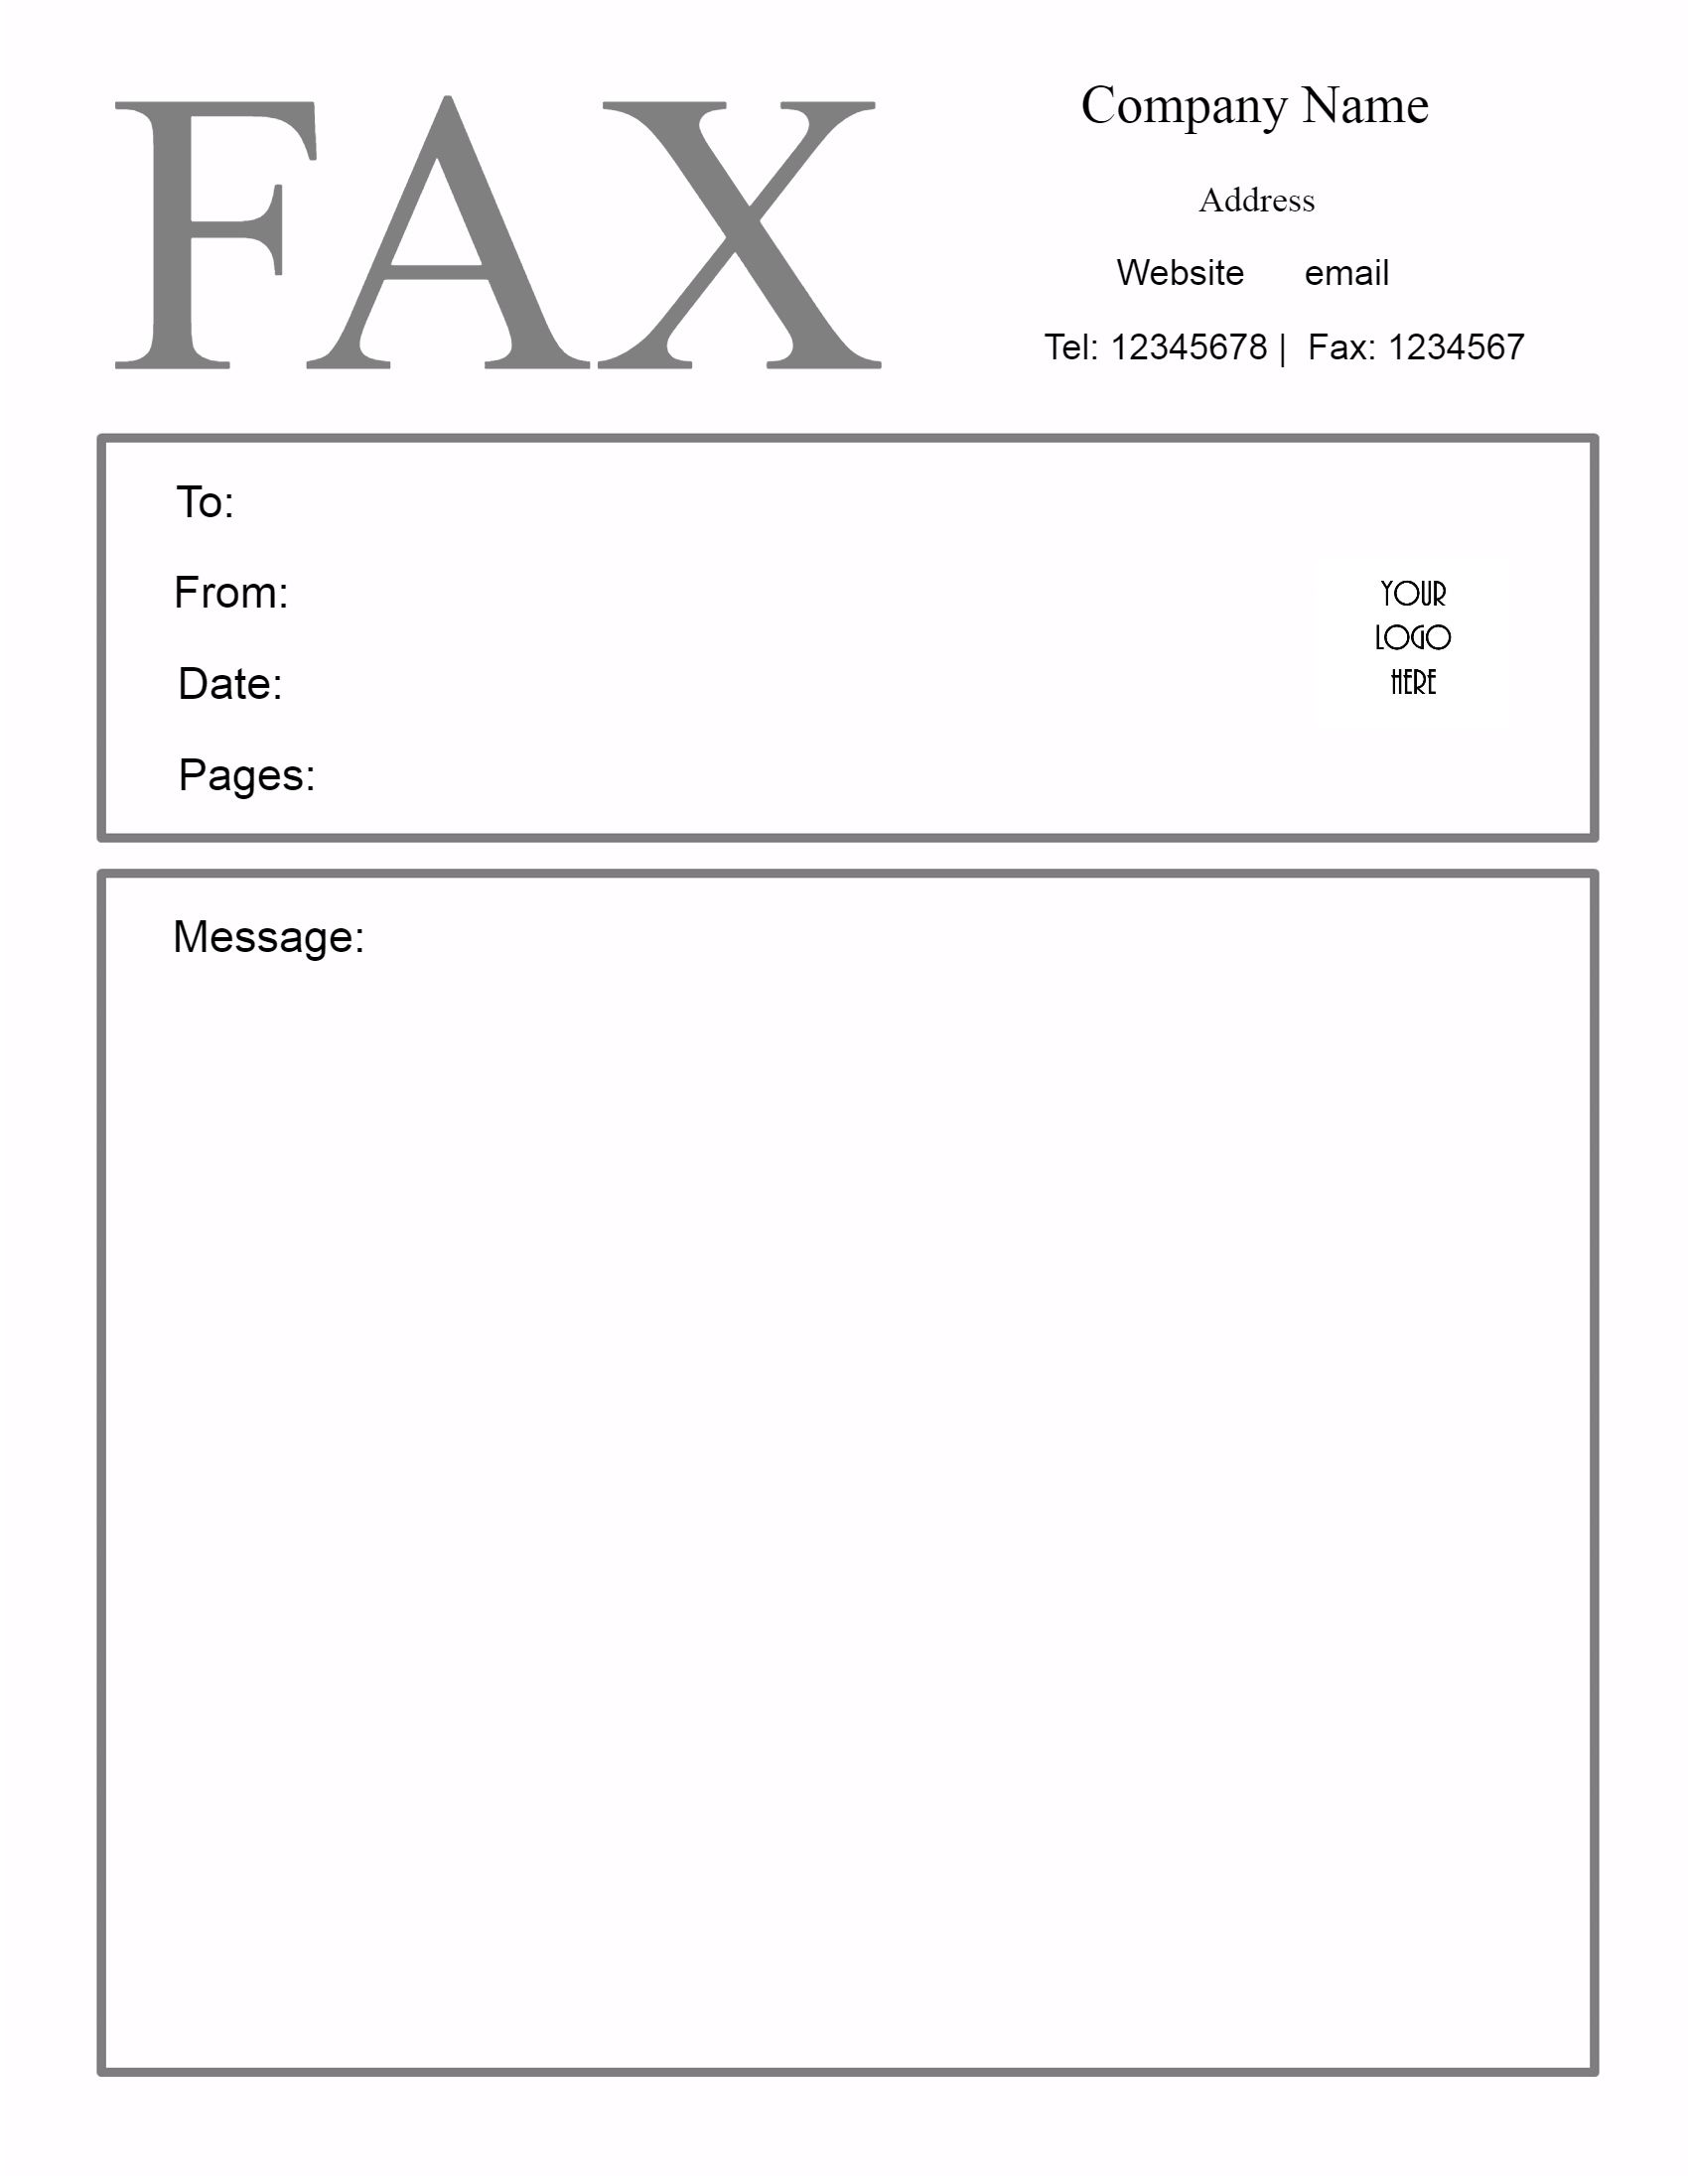 Free fax cover letter template for Cover letter for faxing documents